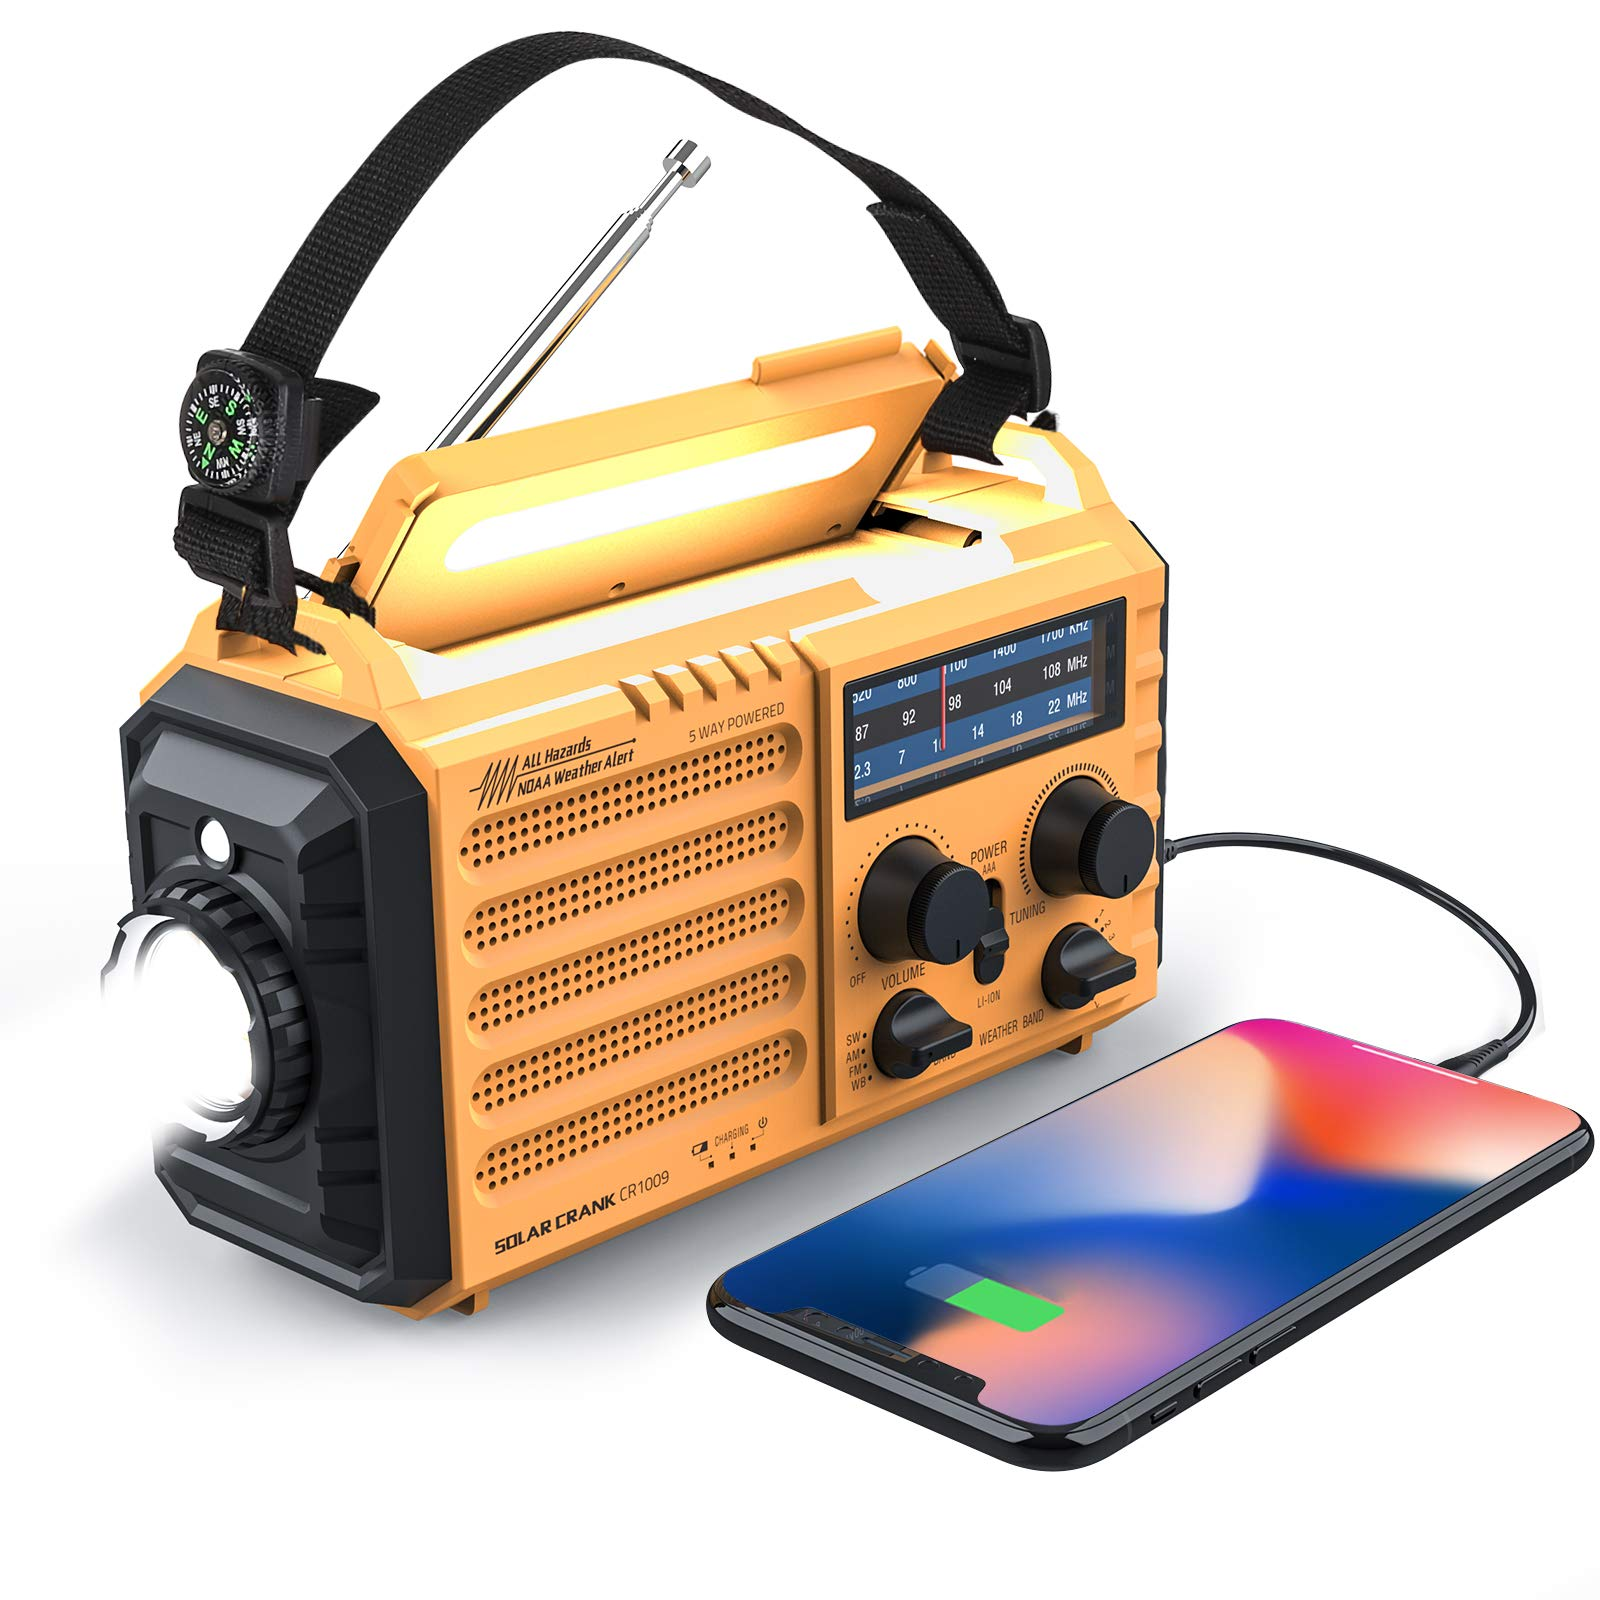 Weather Radio Raynic Solar Hand Crank Emergency Radio 5 Ways Powered AM/FM/SW/NOAA Weather Alert Portable Radio with Flashlight, Reading Lamp, Cellphone Charger and SOS Alarm (Yellow) by Raynic